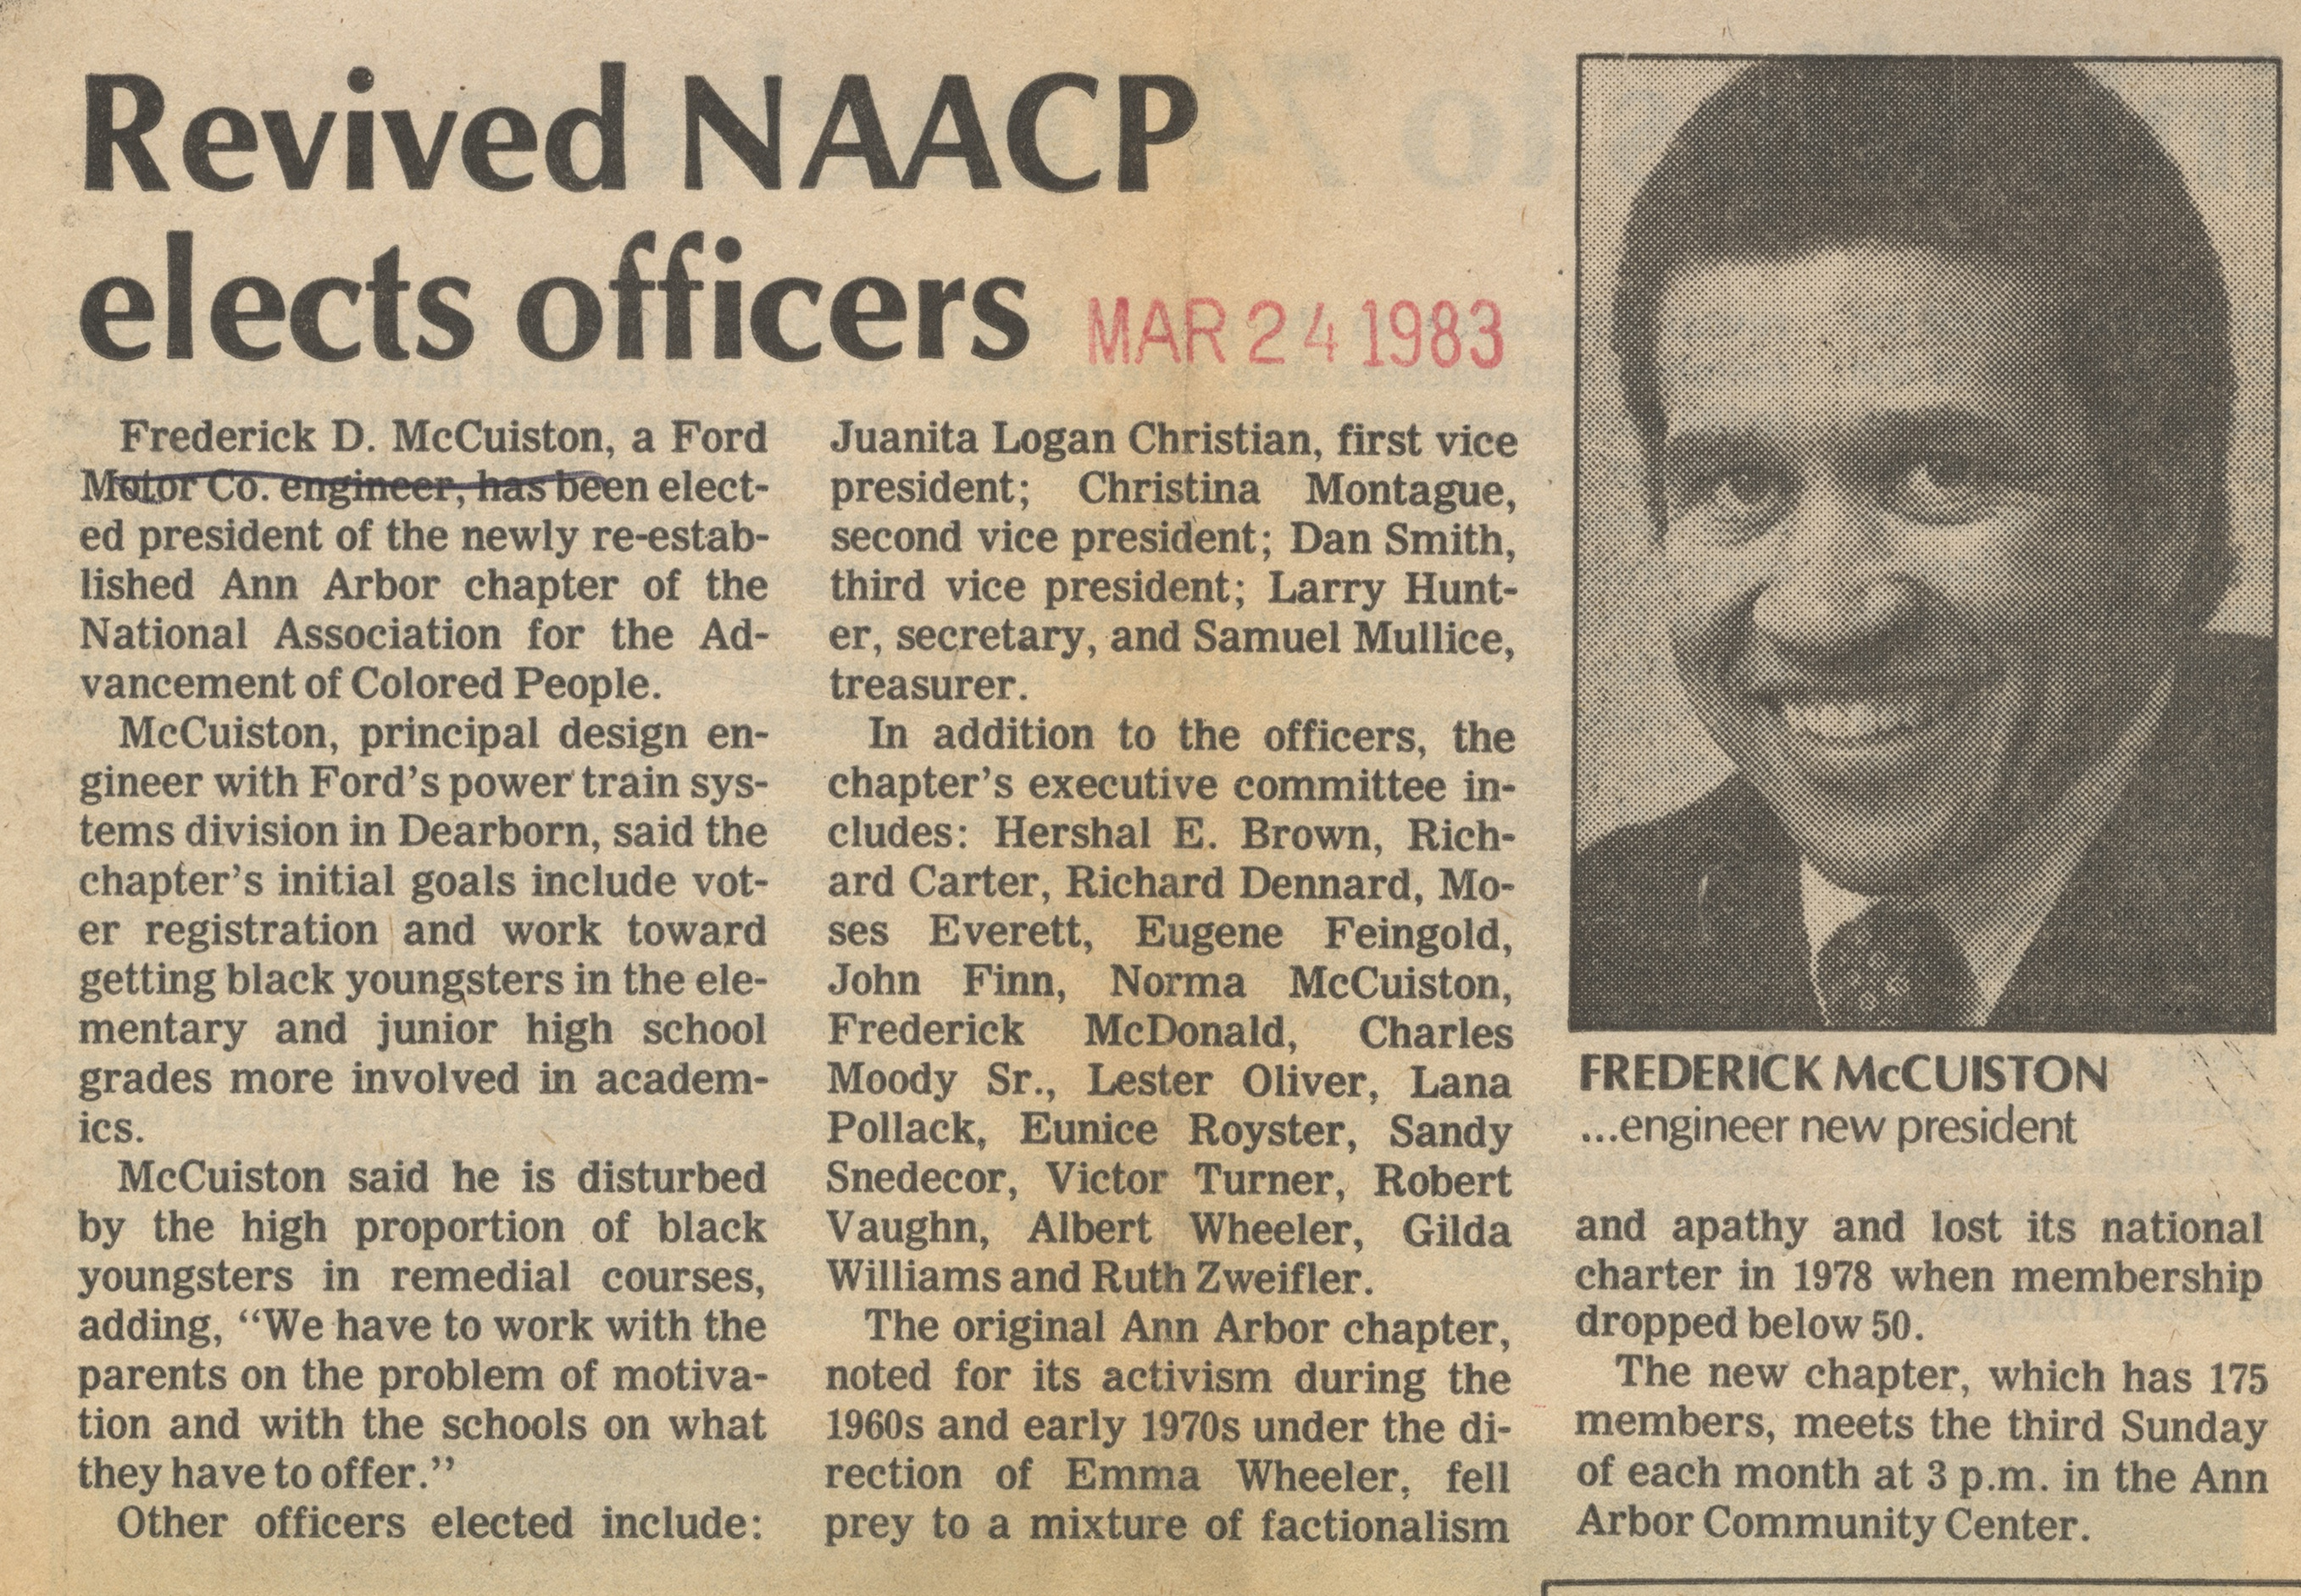 Revived NAACP Elects Officers image